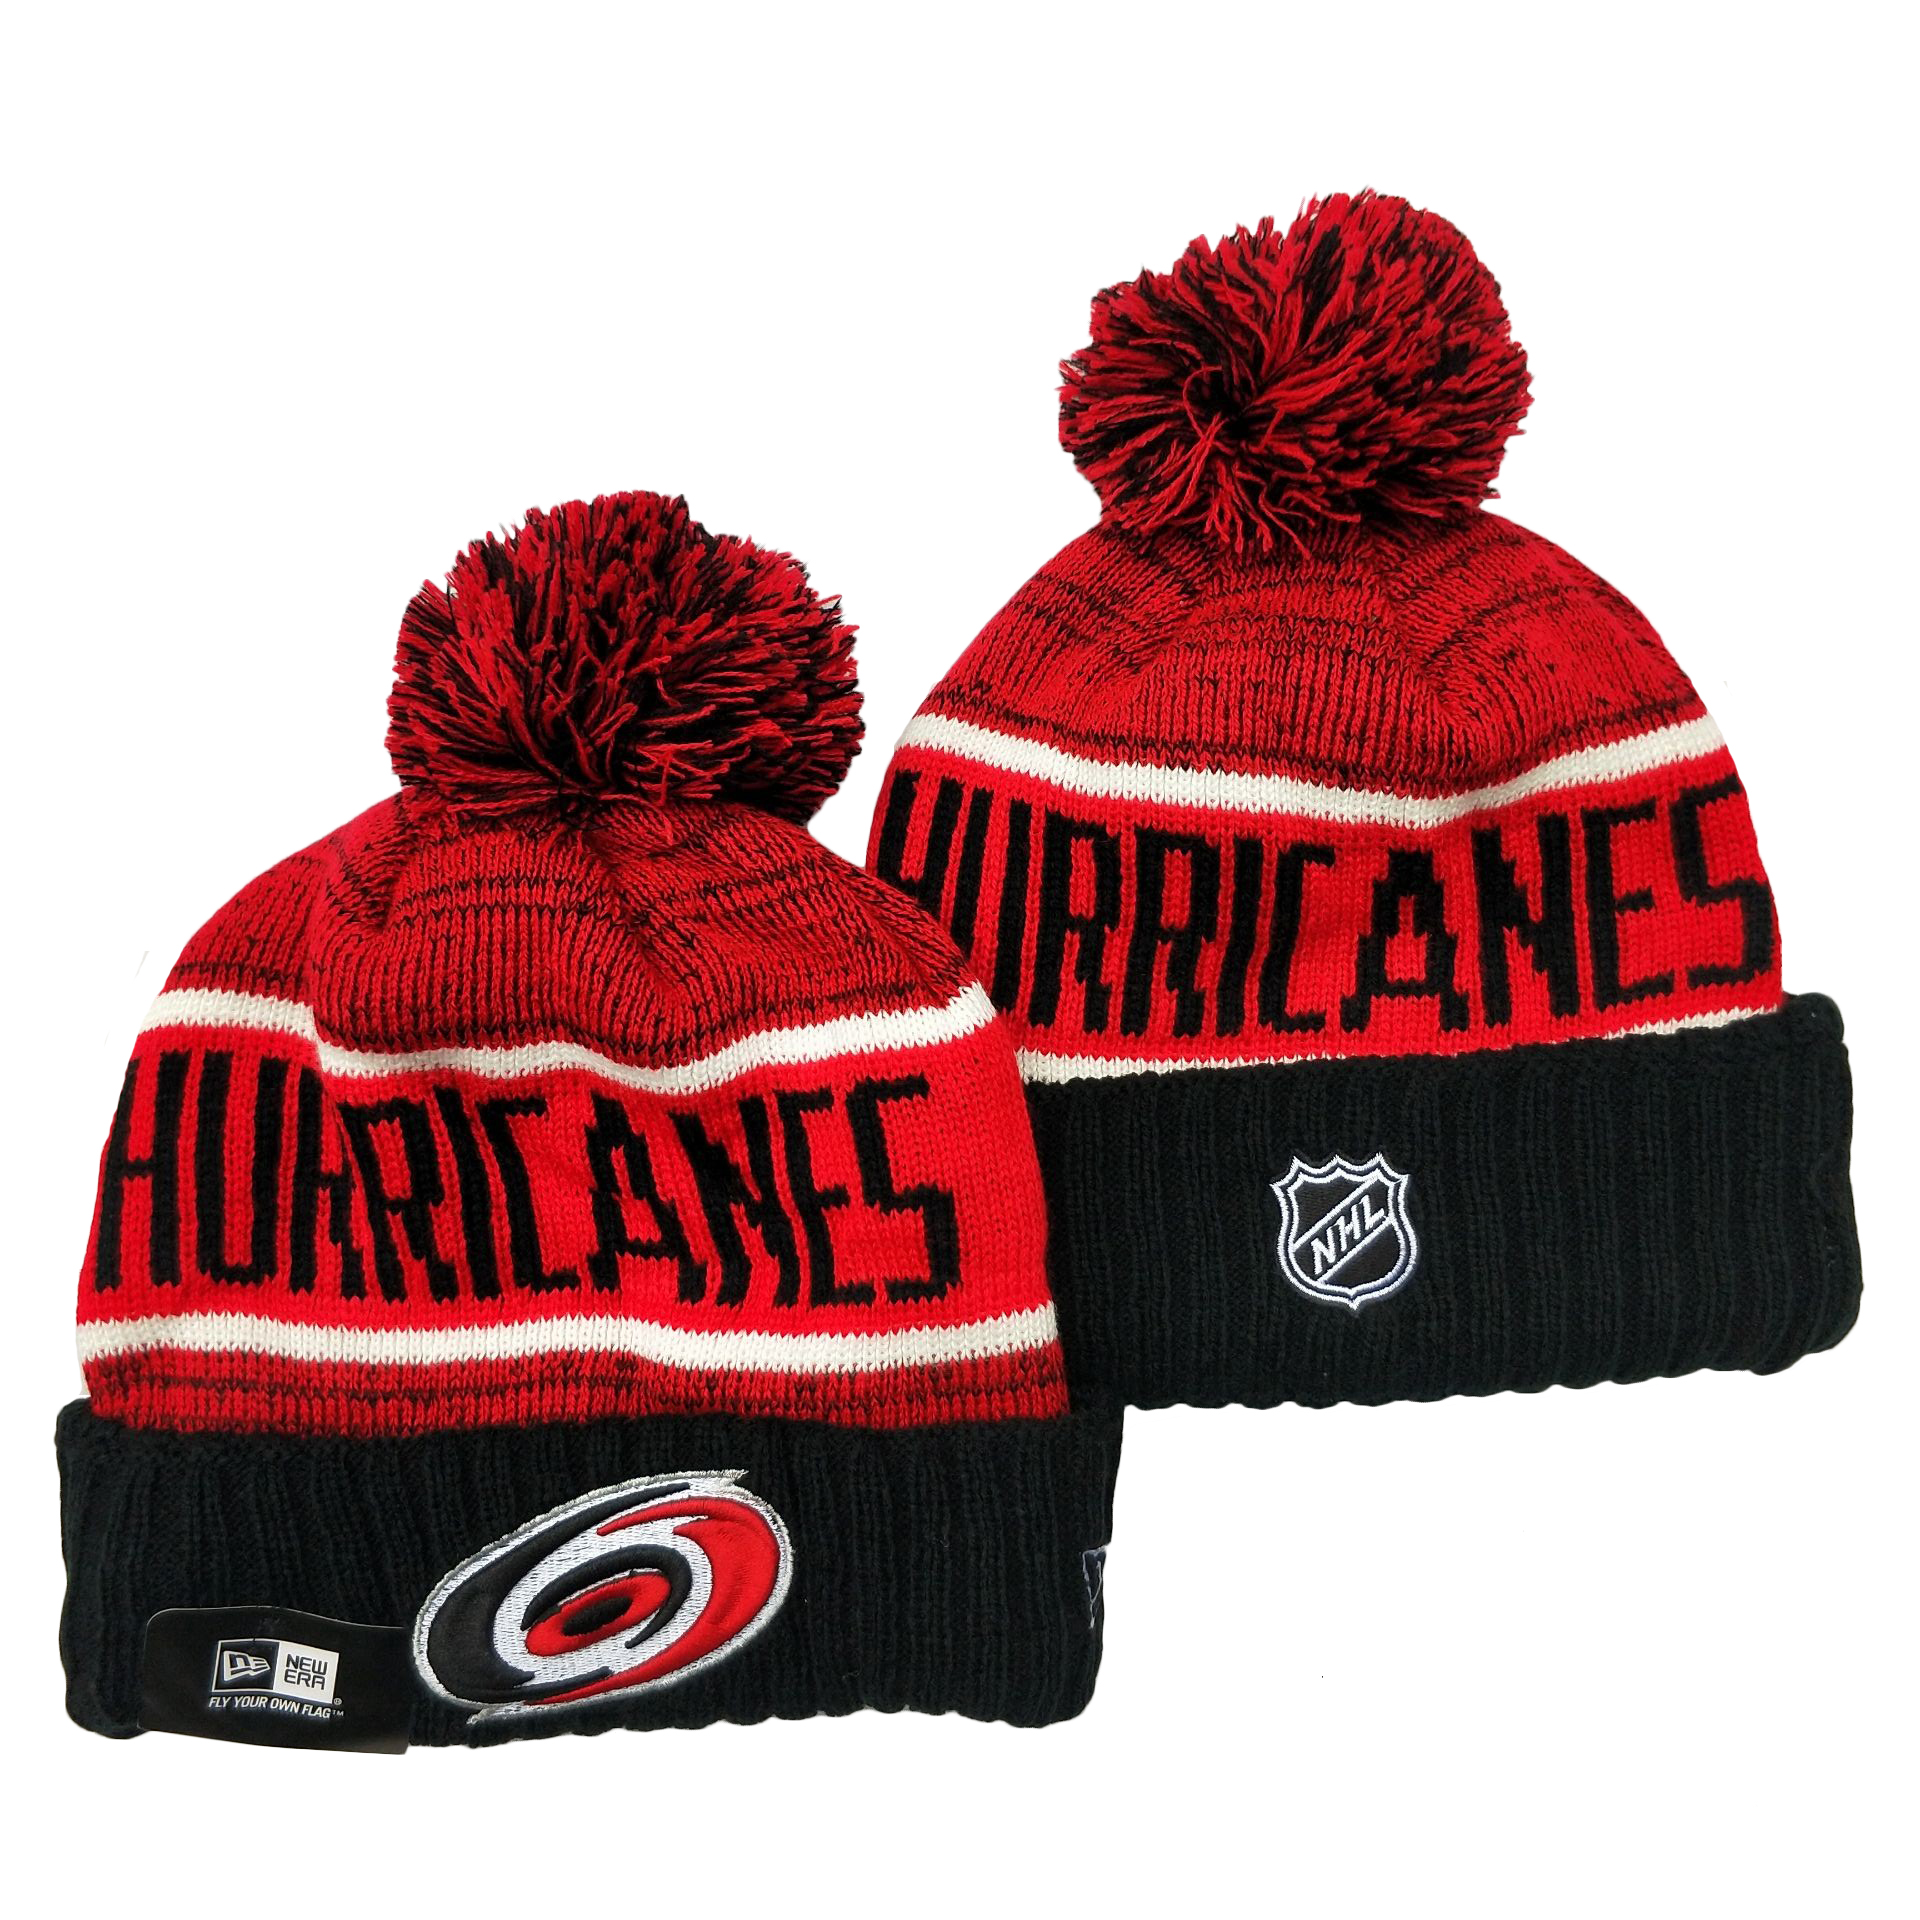 Hurricanes Team Logo Red Black Pom Cuffed Knit Hat YD